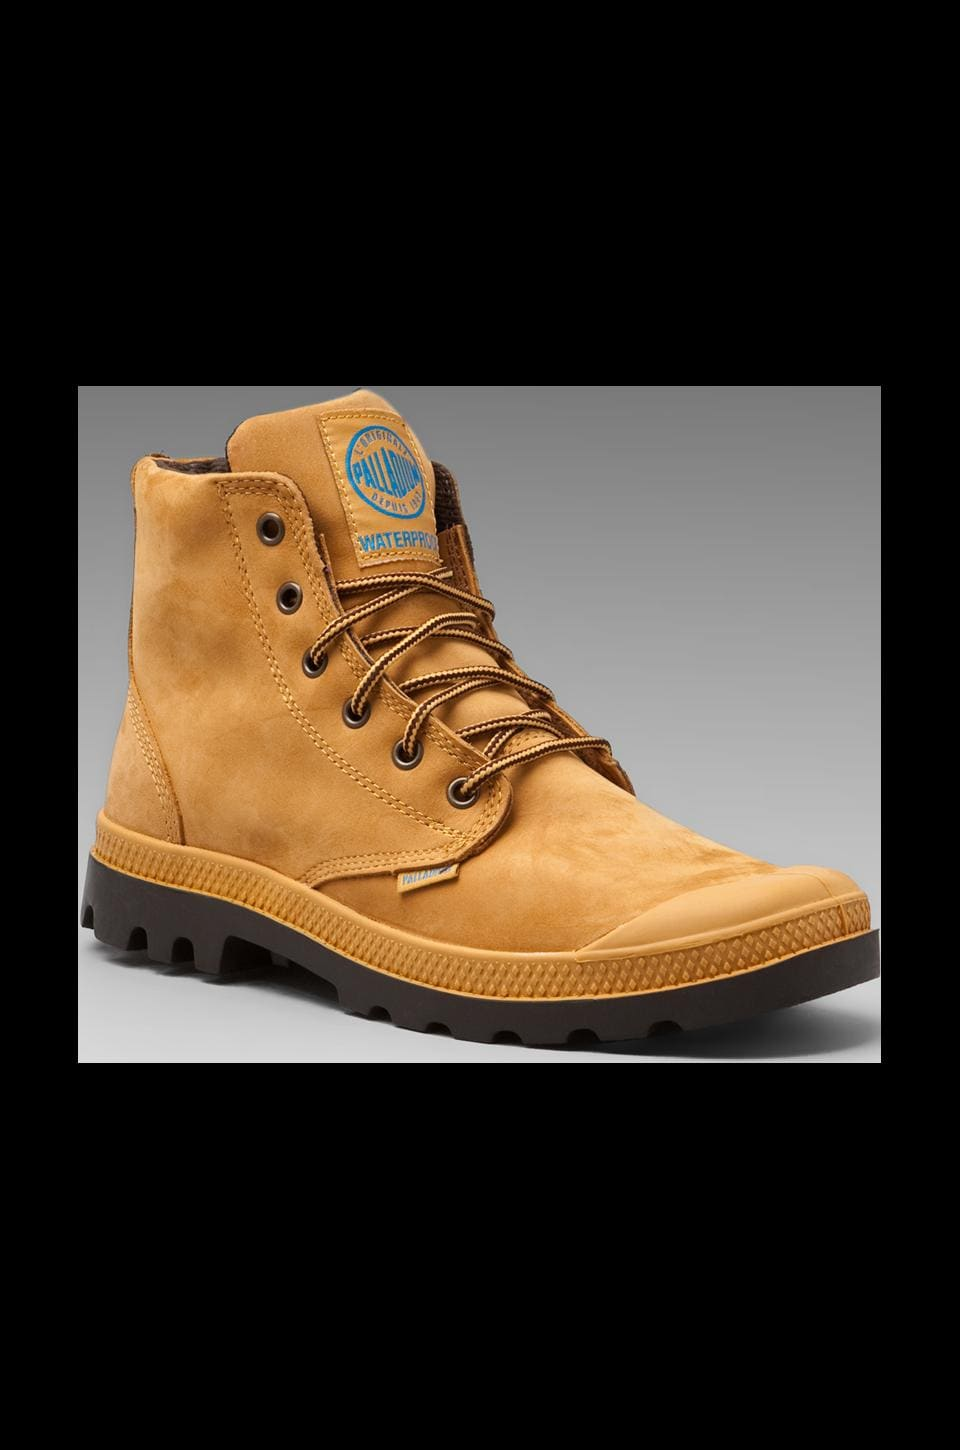 Palladium Waterproof Pampa Hi in Amber Gold/Chocolate